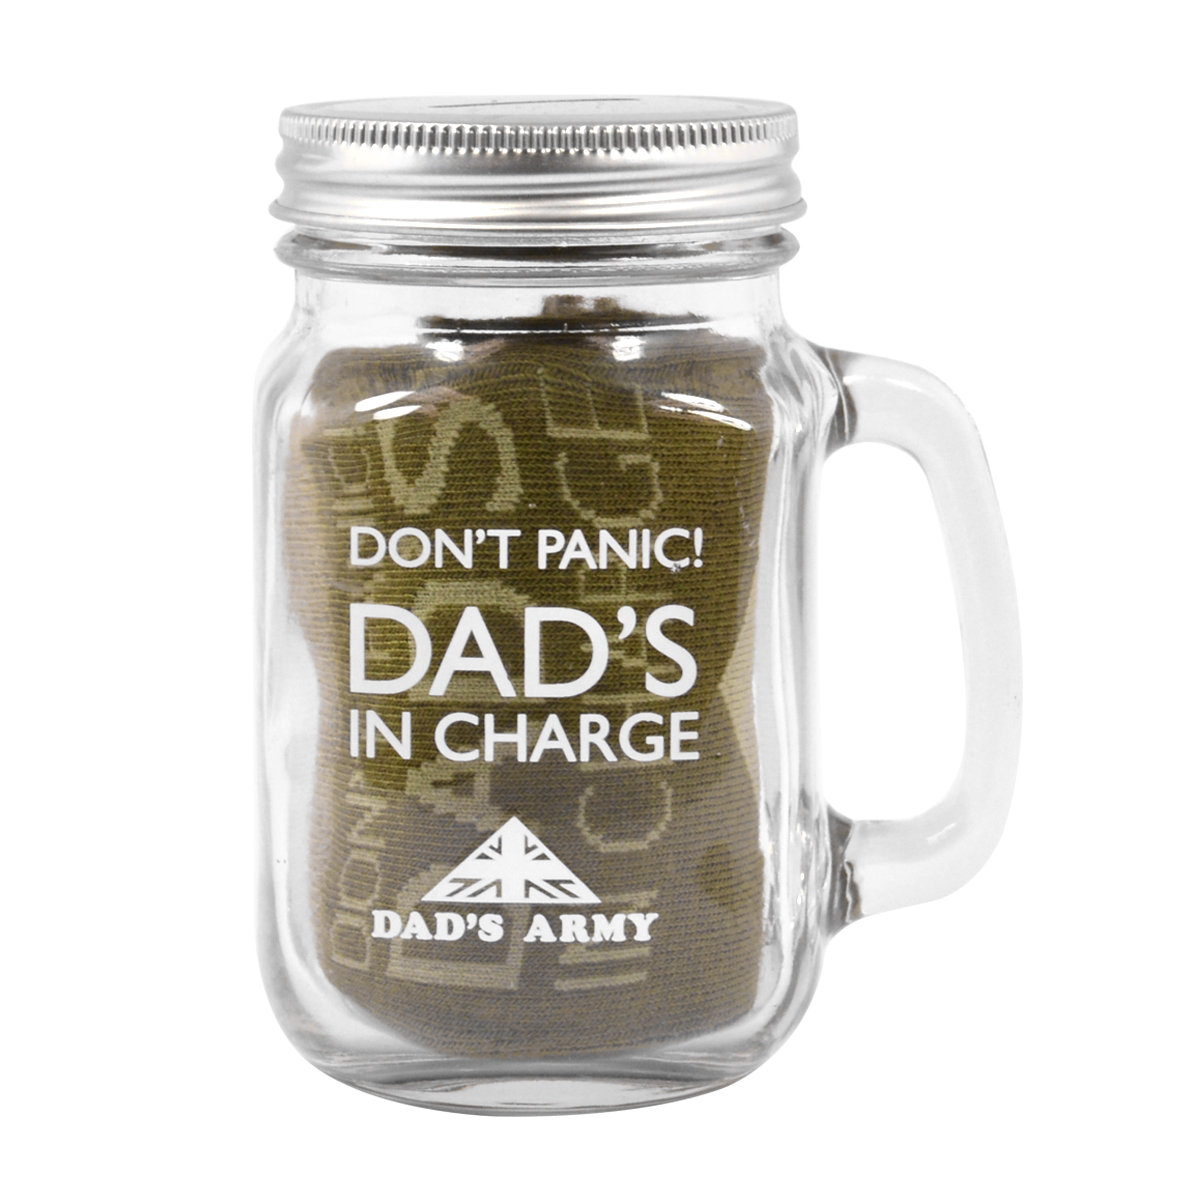 Dad 39 s army don 39 t panic dad 39 s in charge money jar socks for Cool money jars